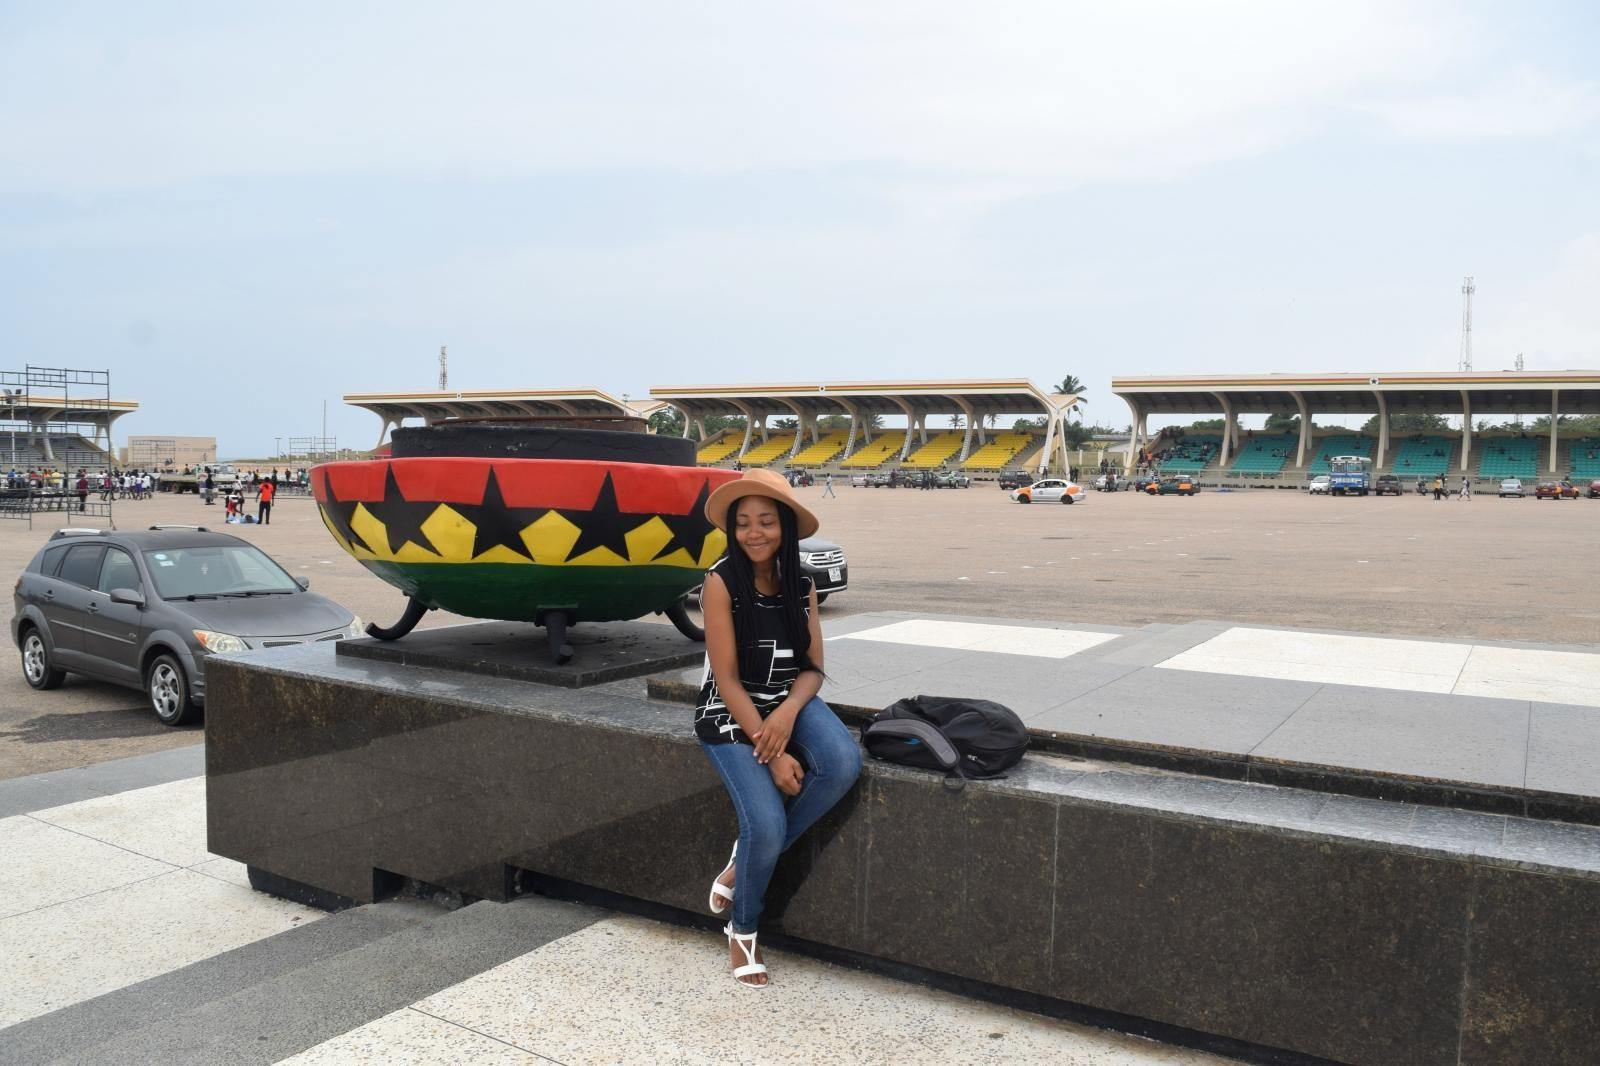 A-female-tourist-in-Accra-Ghana